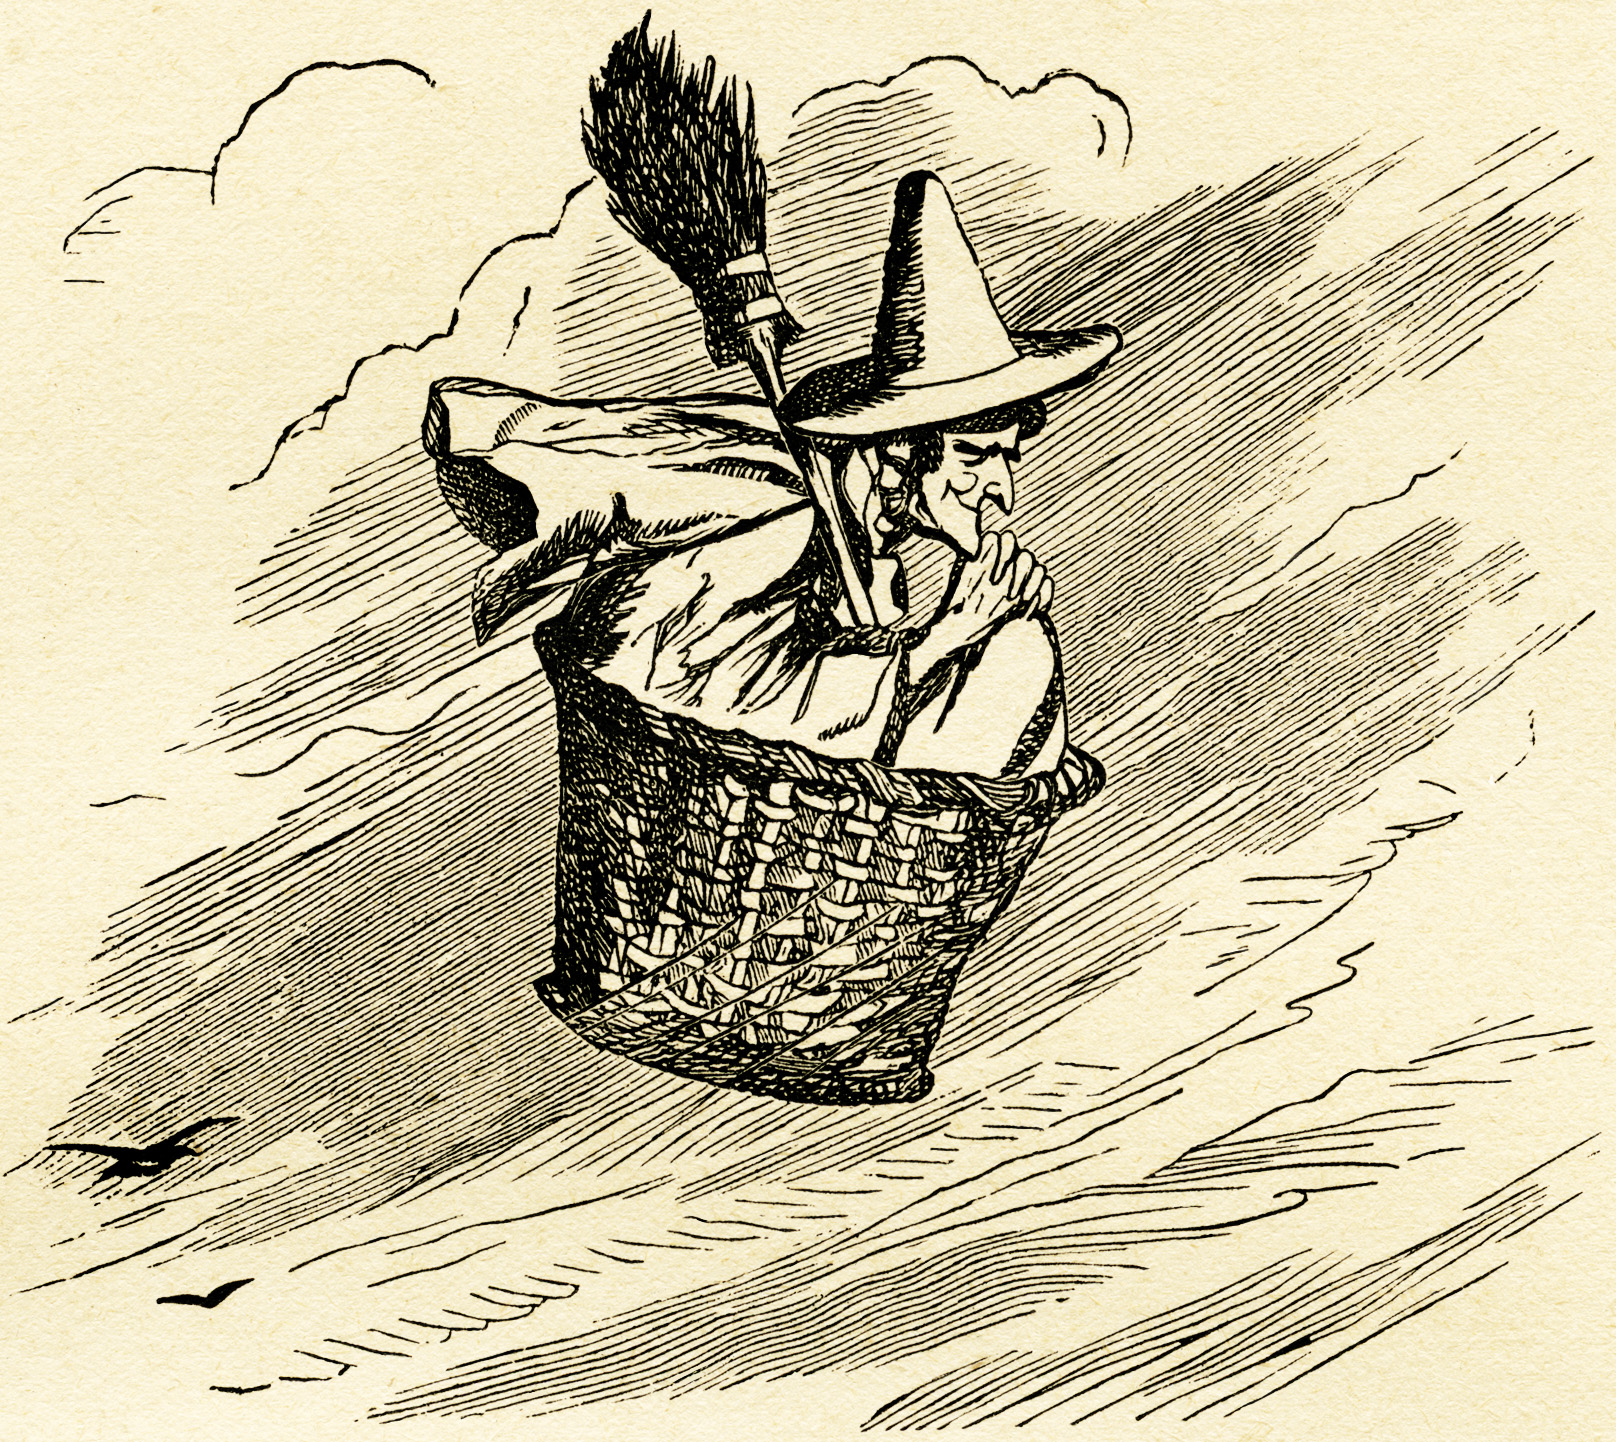 free vintage clipart witch, witch flying in basket, free digital witch illustration, free printable witch image, halloween